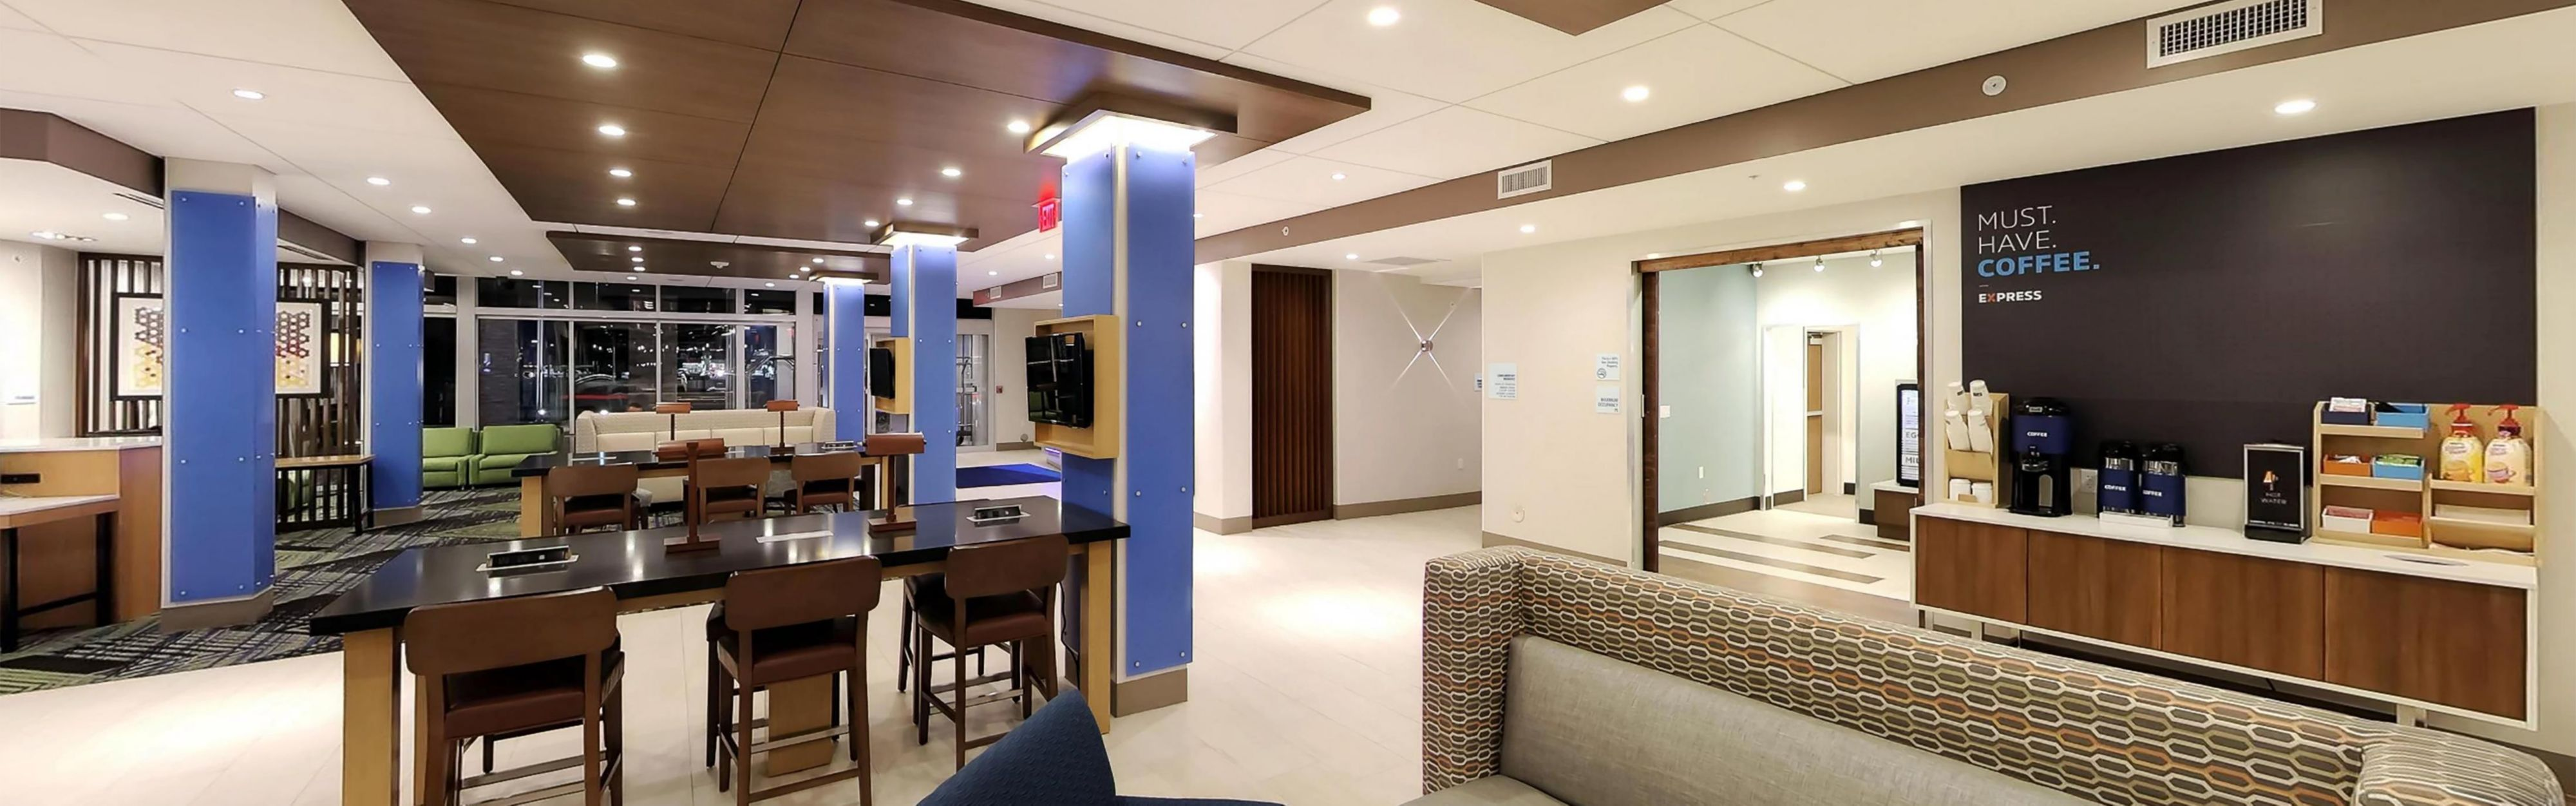 Holiday Inn Express & Suites Detroit Northwest - Livonia image 3